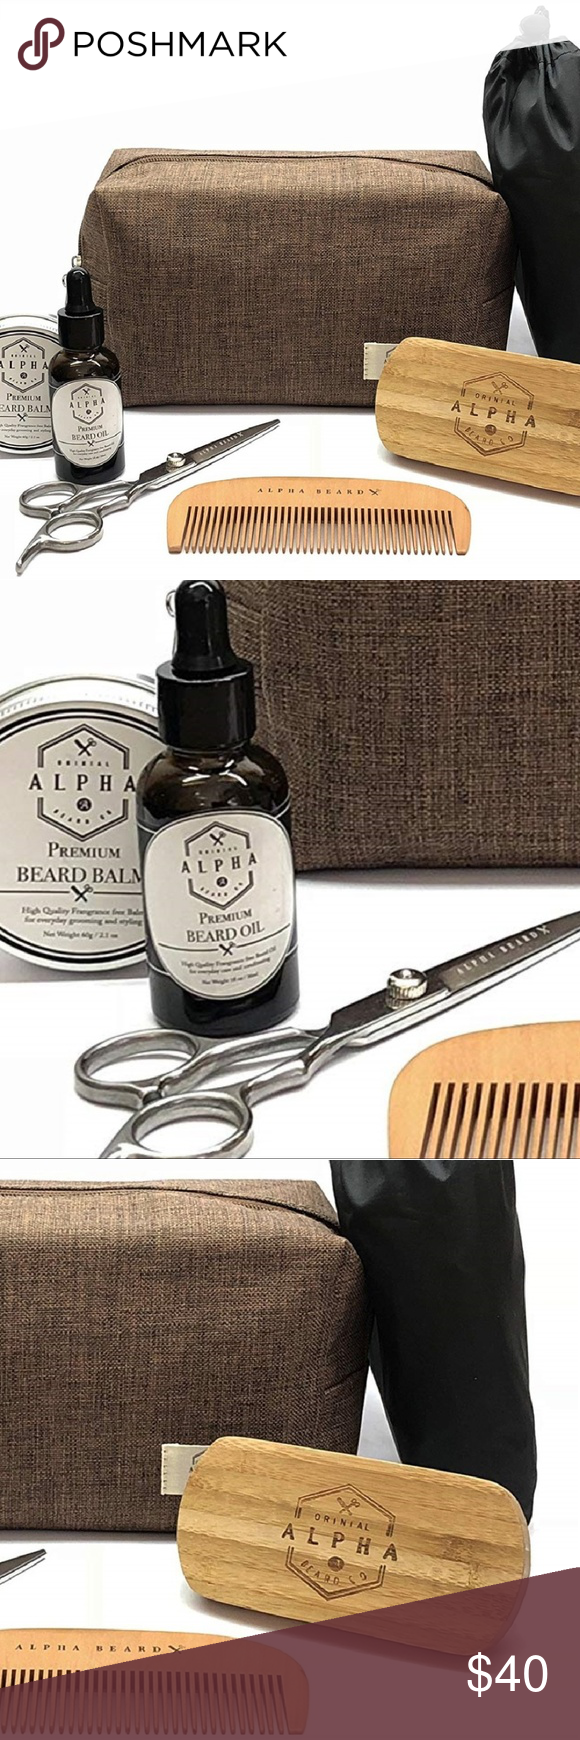 NEW Top Quality Beard Grooming Kit For Men NEW Top Quality Beard Grooming Kit Fo...